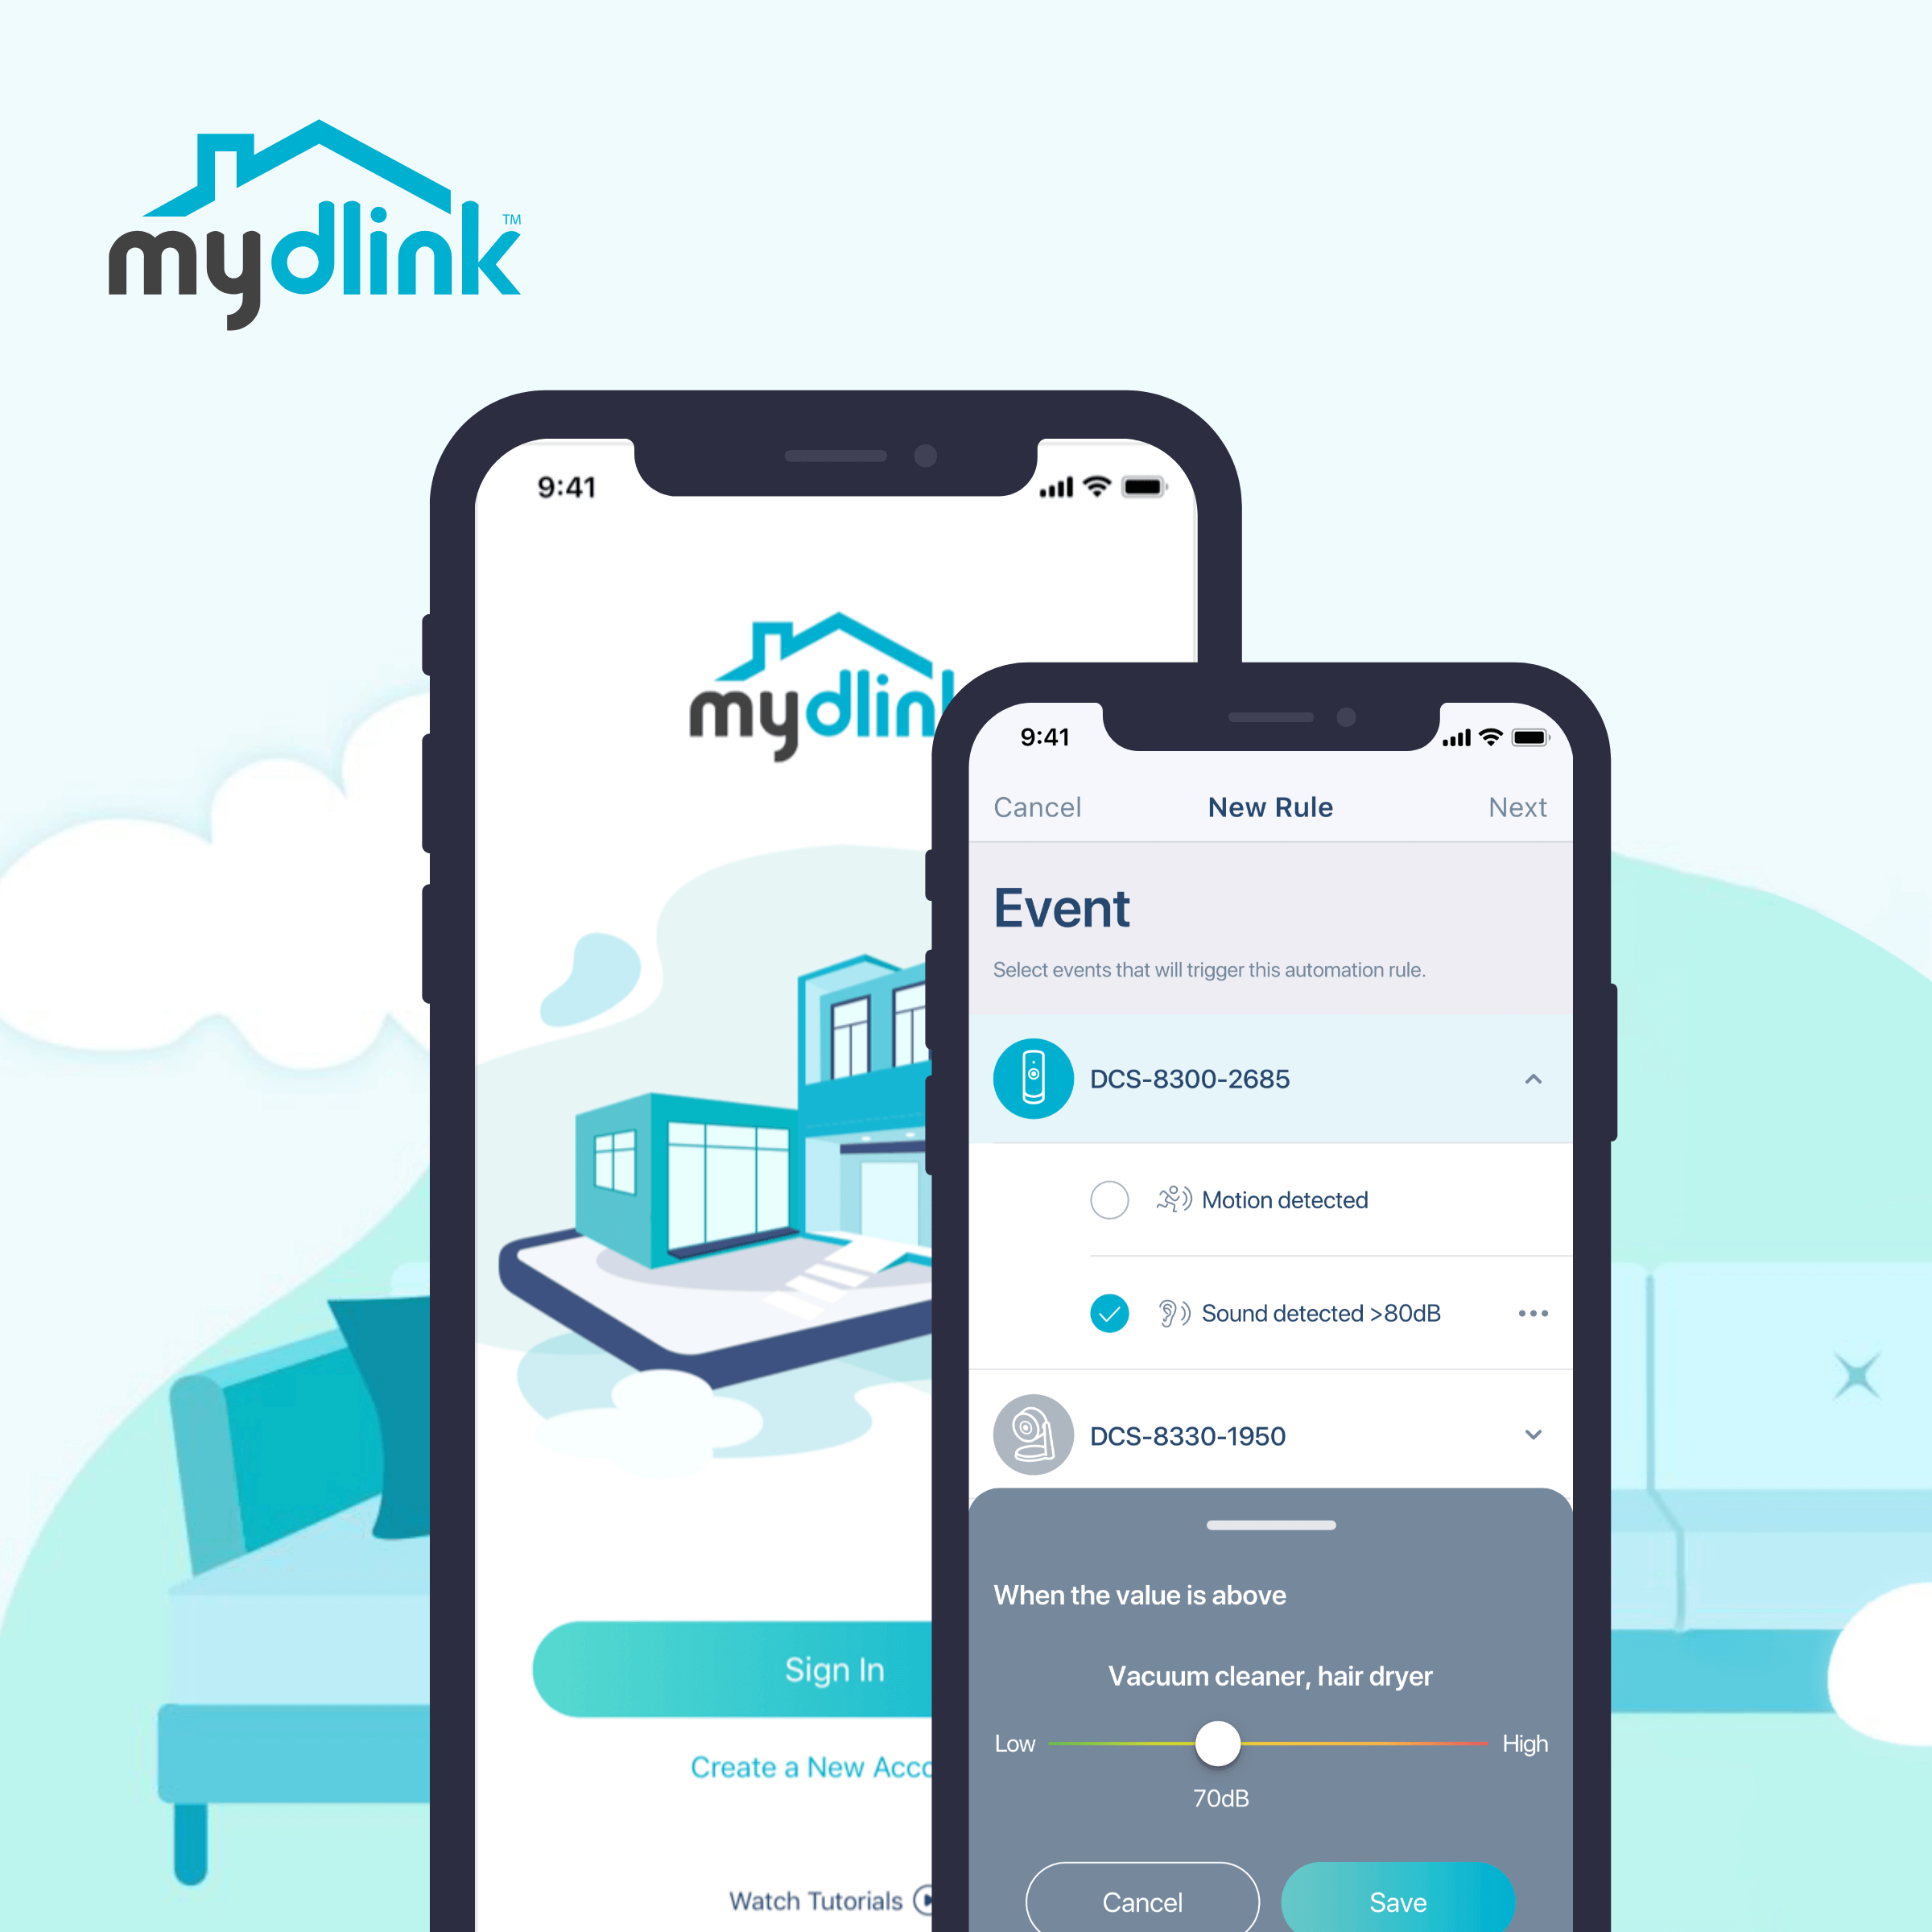 The mydlink APP Revamp